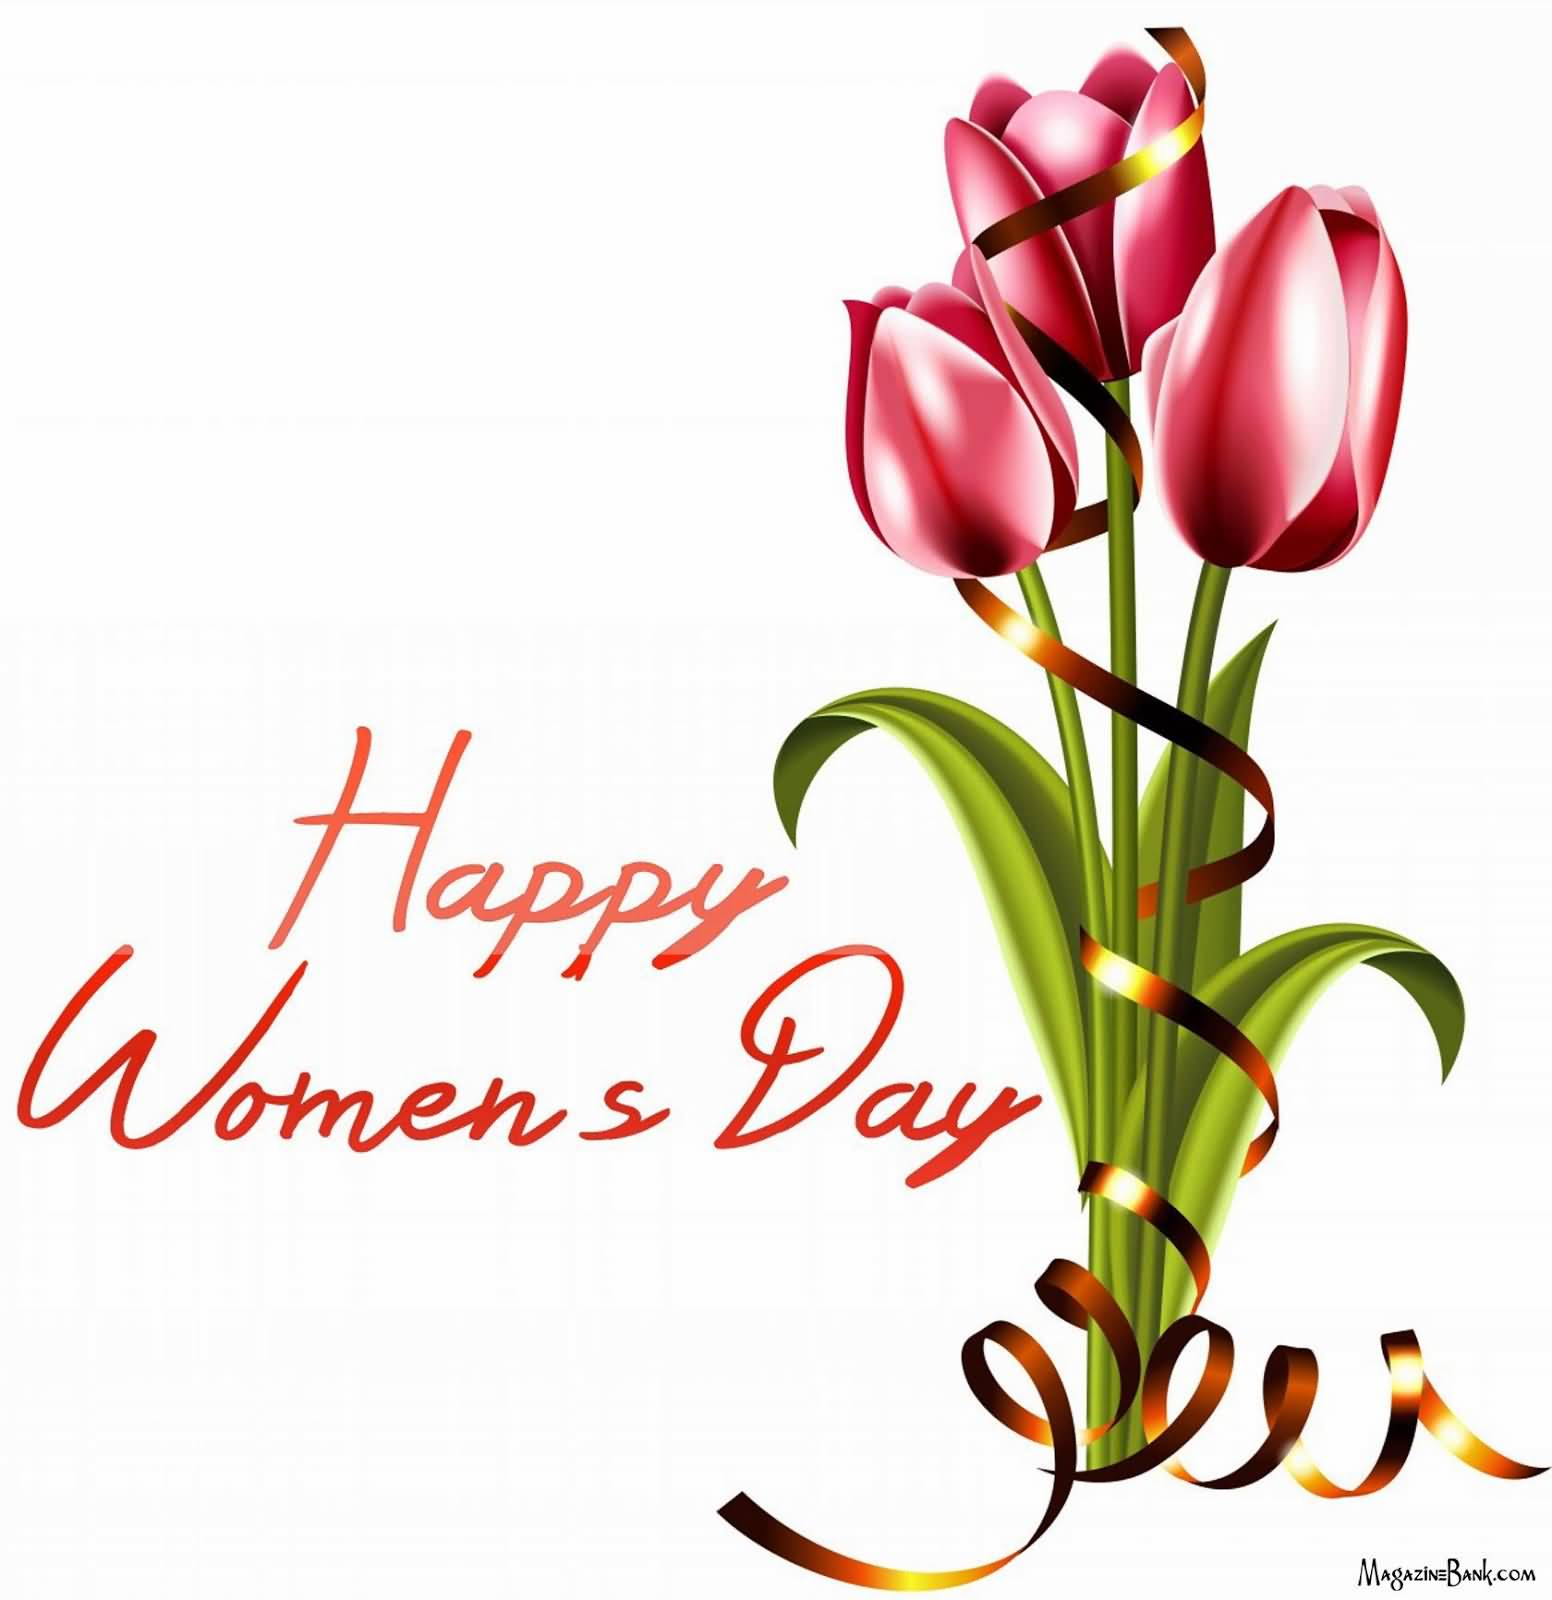 50 Women S Day Pictures And Photos